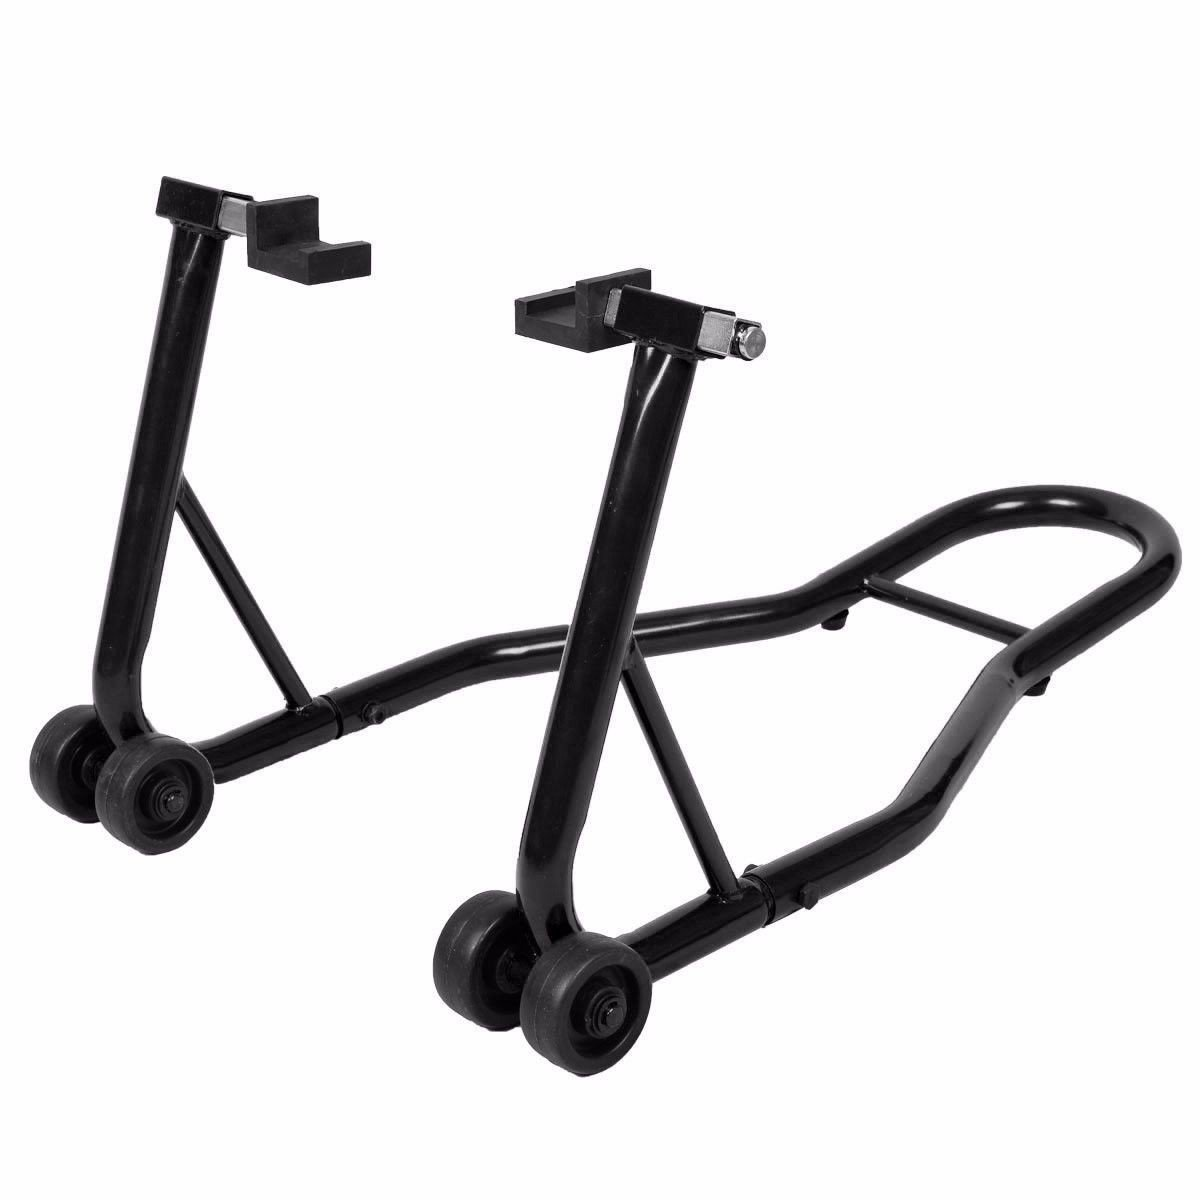 Motorcycle Lift Bike Stand Forklift Paddock Swingarm High Grade Steel Adjustable Arm MD Group